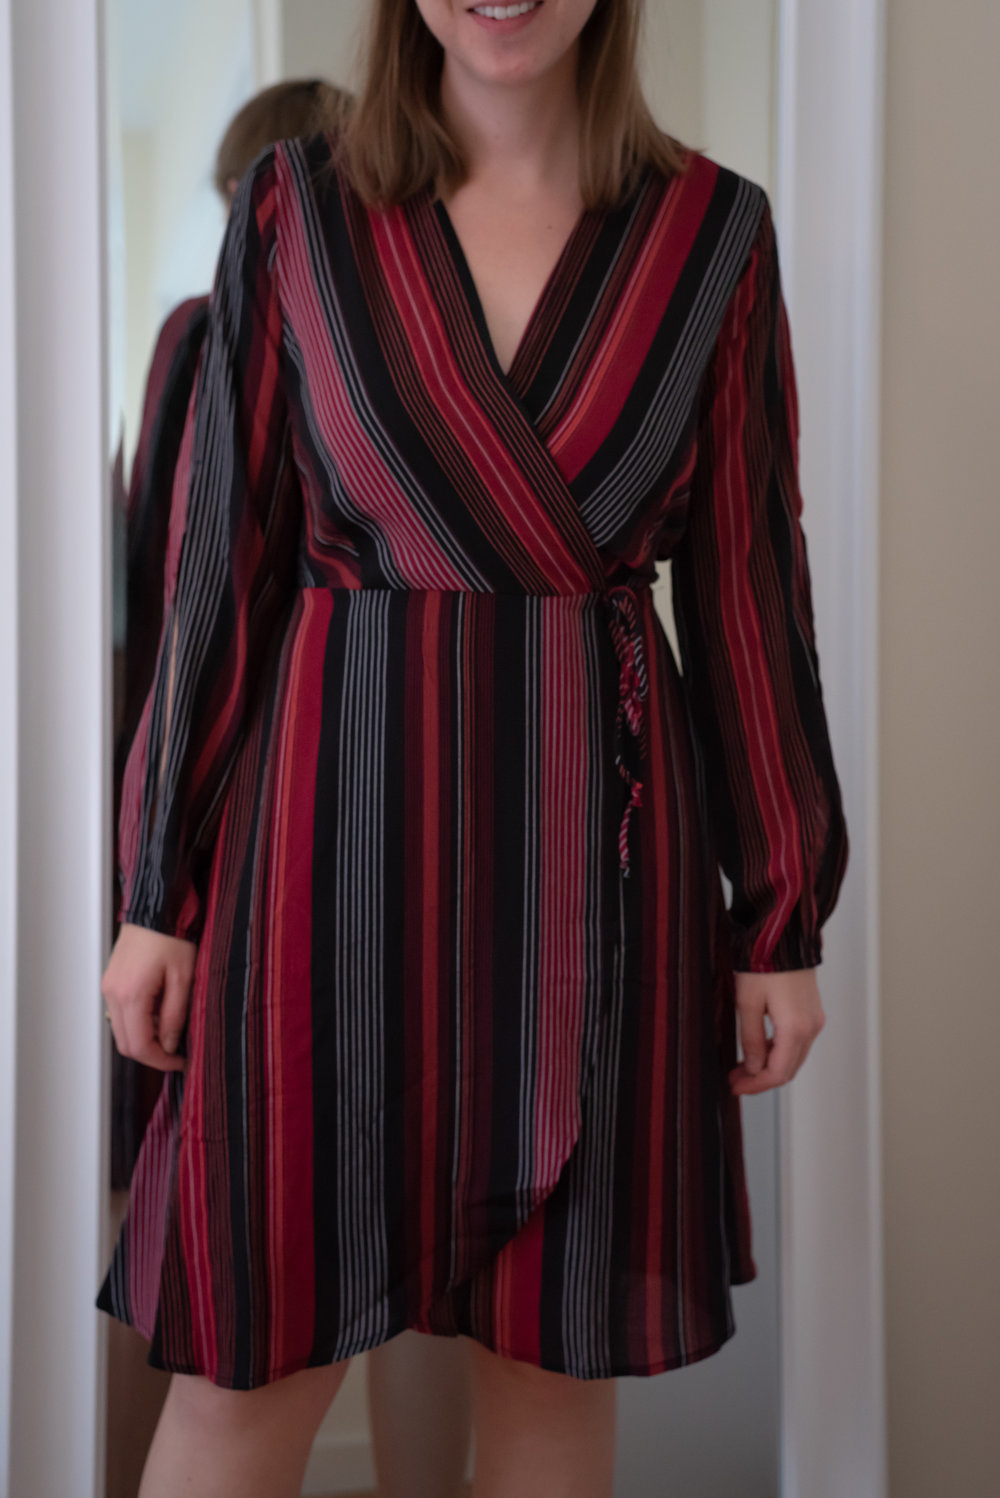 Monteau Petite Striped Split-Sleeve Faux-Wrap Dress - Size Petite S - FRONT